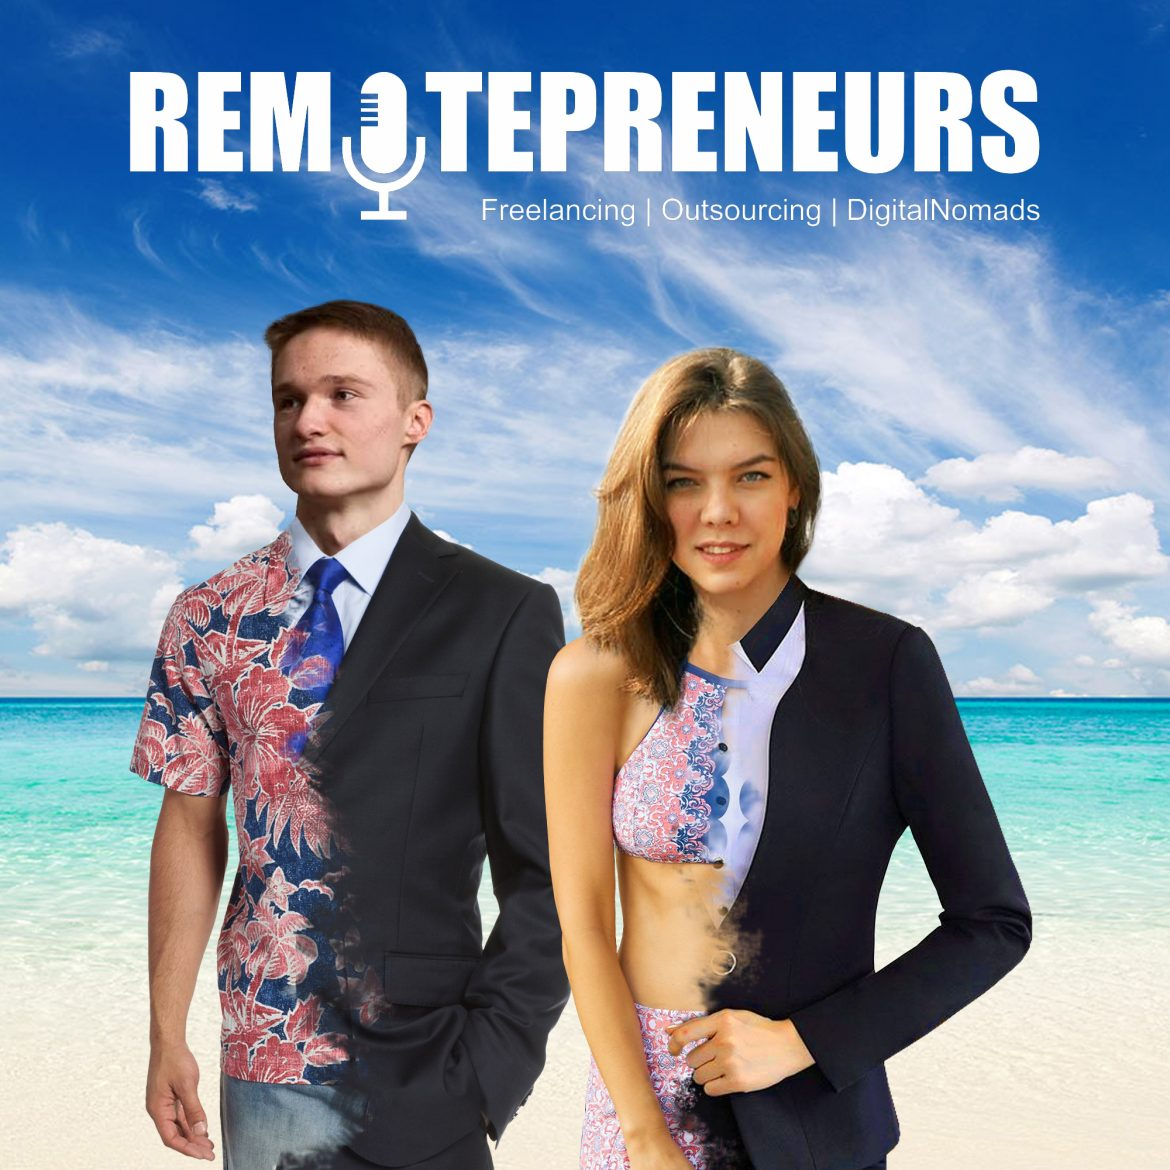 ep 9 - How To Live Abroad As Couples - Vera Markova & Tomass Sarts